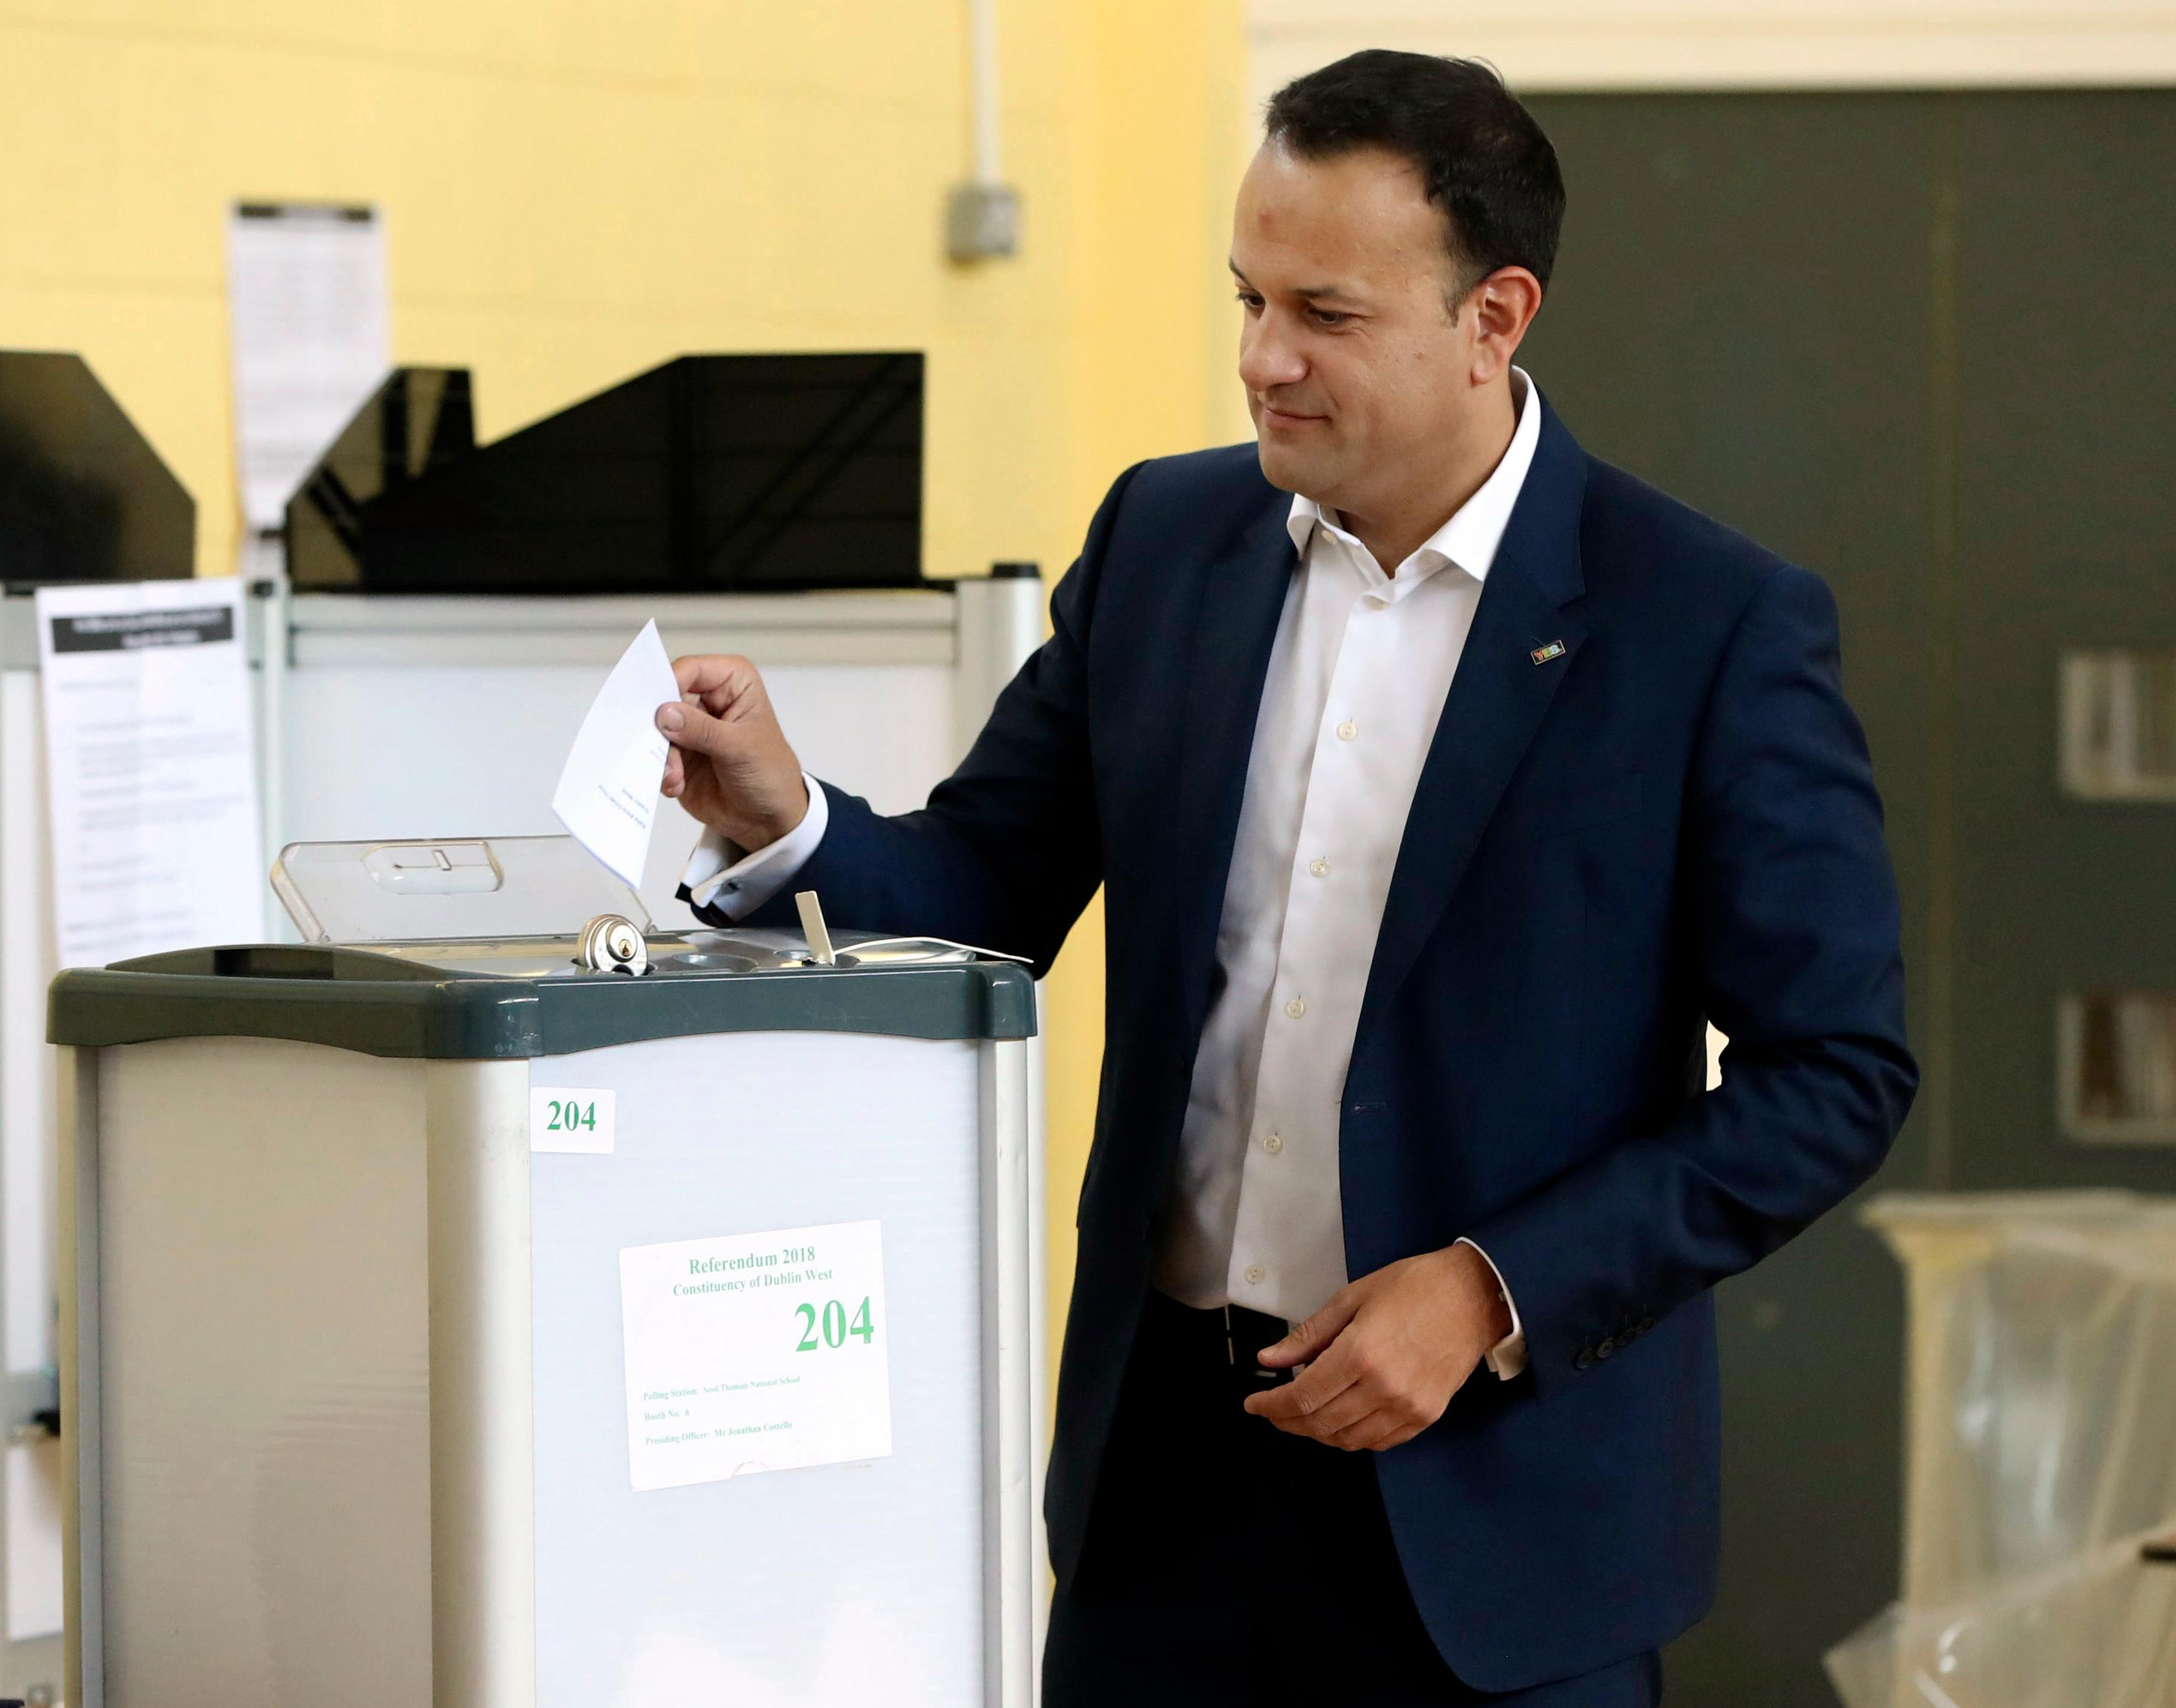 Ireland's Prime Minister Leo Varadkar cast his vote at the polling station as the country goes to the polls to vote in the referendum on the 8th Amendment of the Irish Constitution, in Dublin, Friday, May 25, 2018. Voters throughout Ireland have begun casting votes in a referendum that may lead to a loosening of the country's strict ban on most abortions. (Niall Carson/PA via AP)